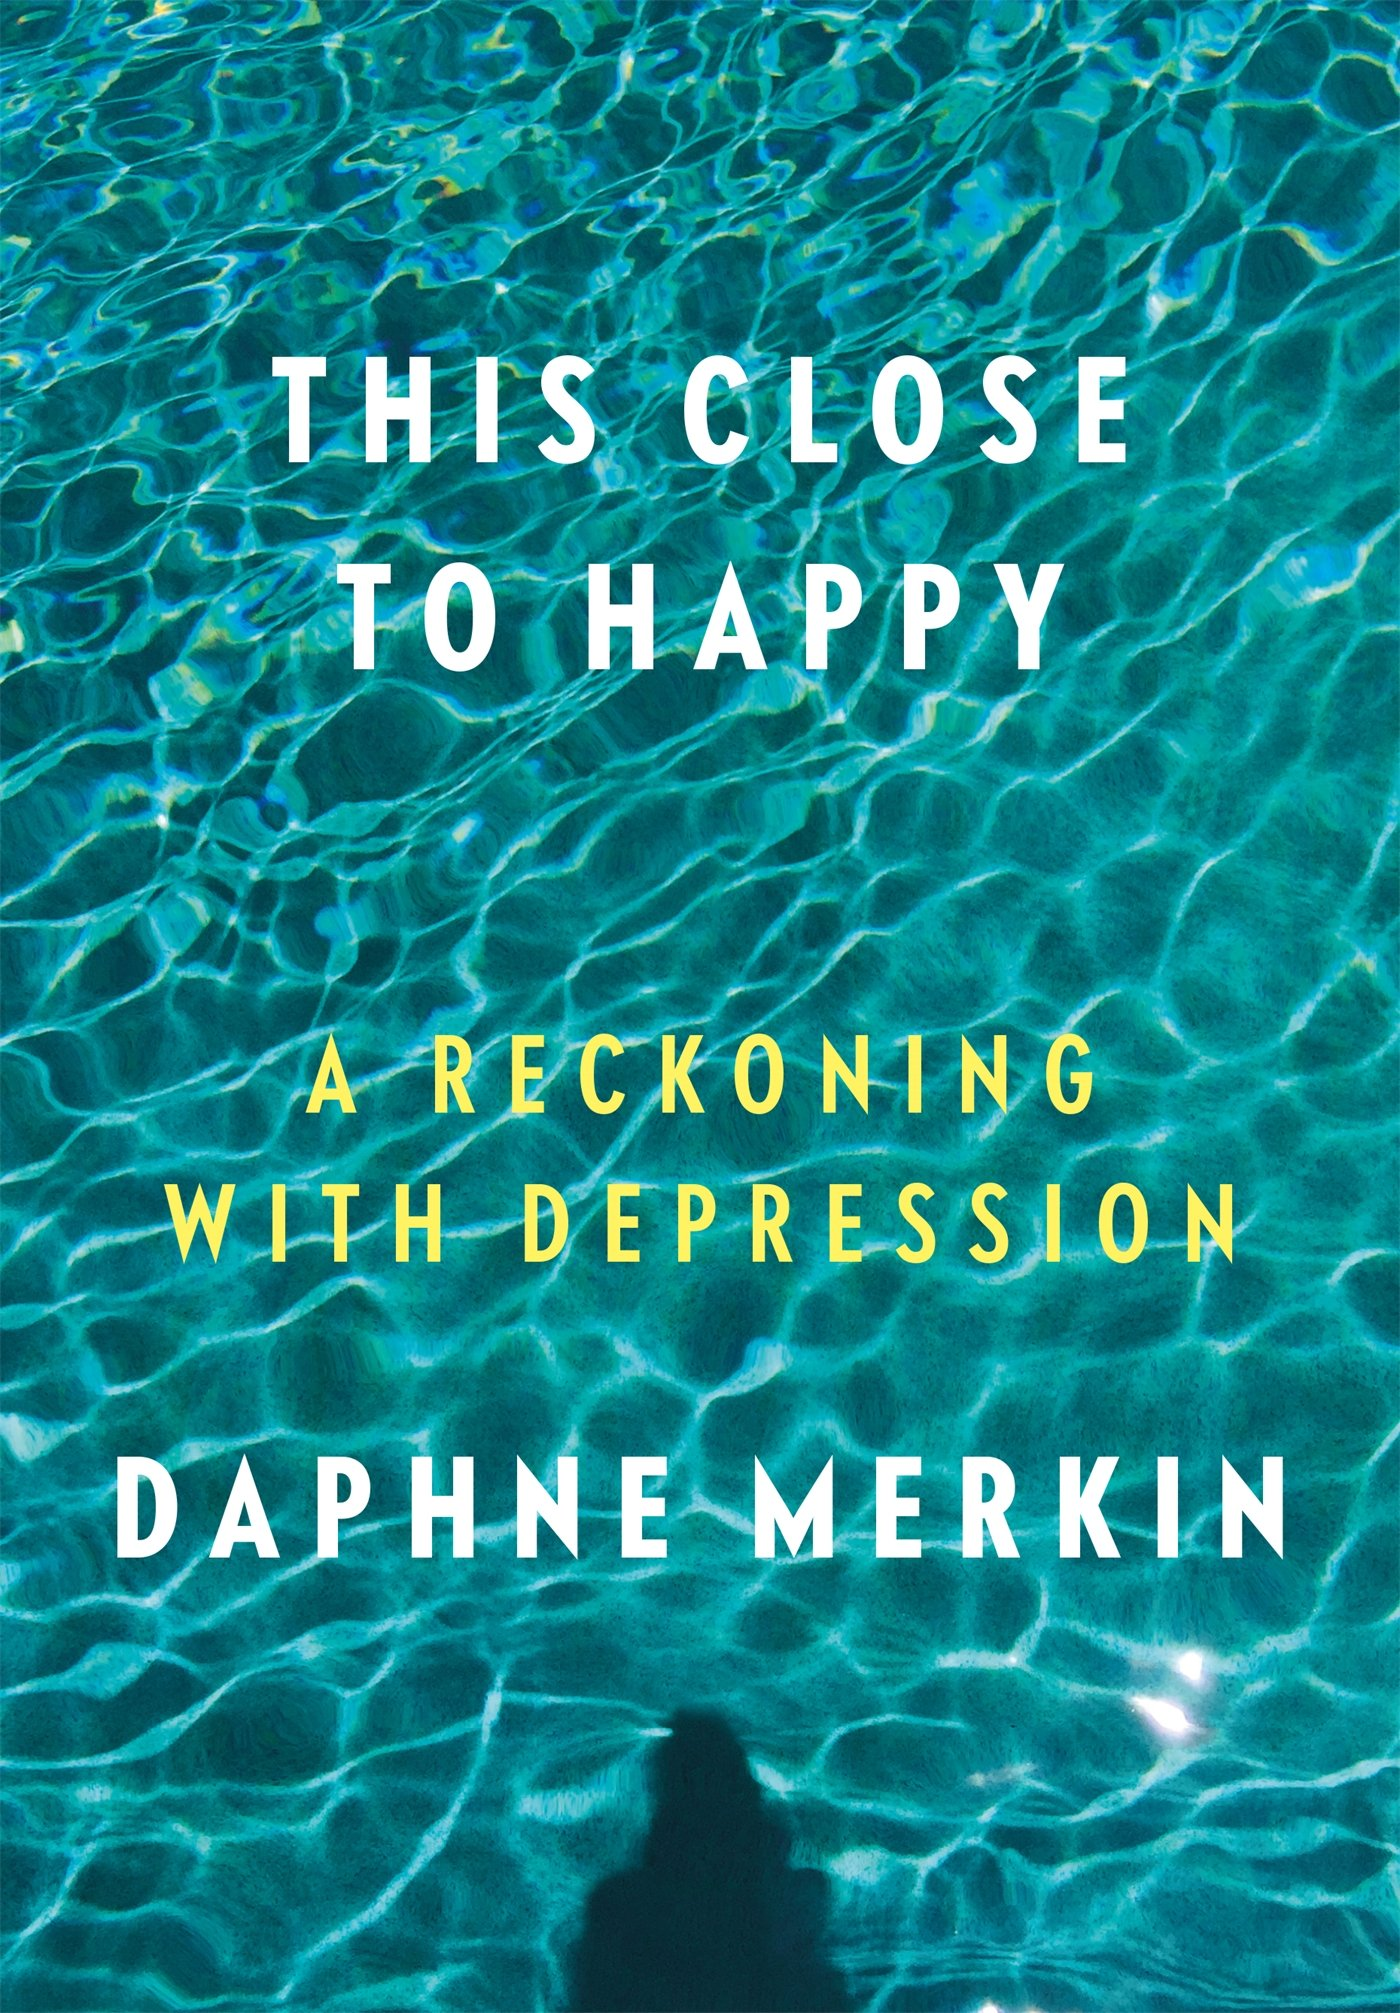 'This Close to Happy' by Daphne Merkin